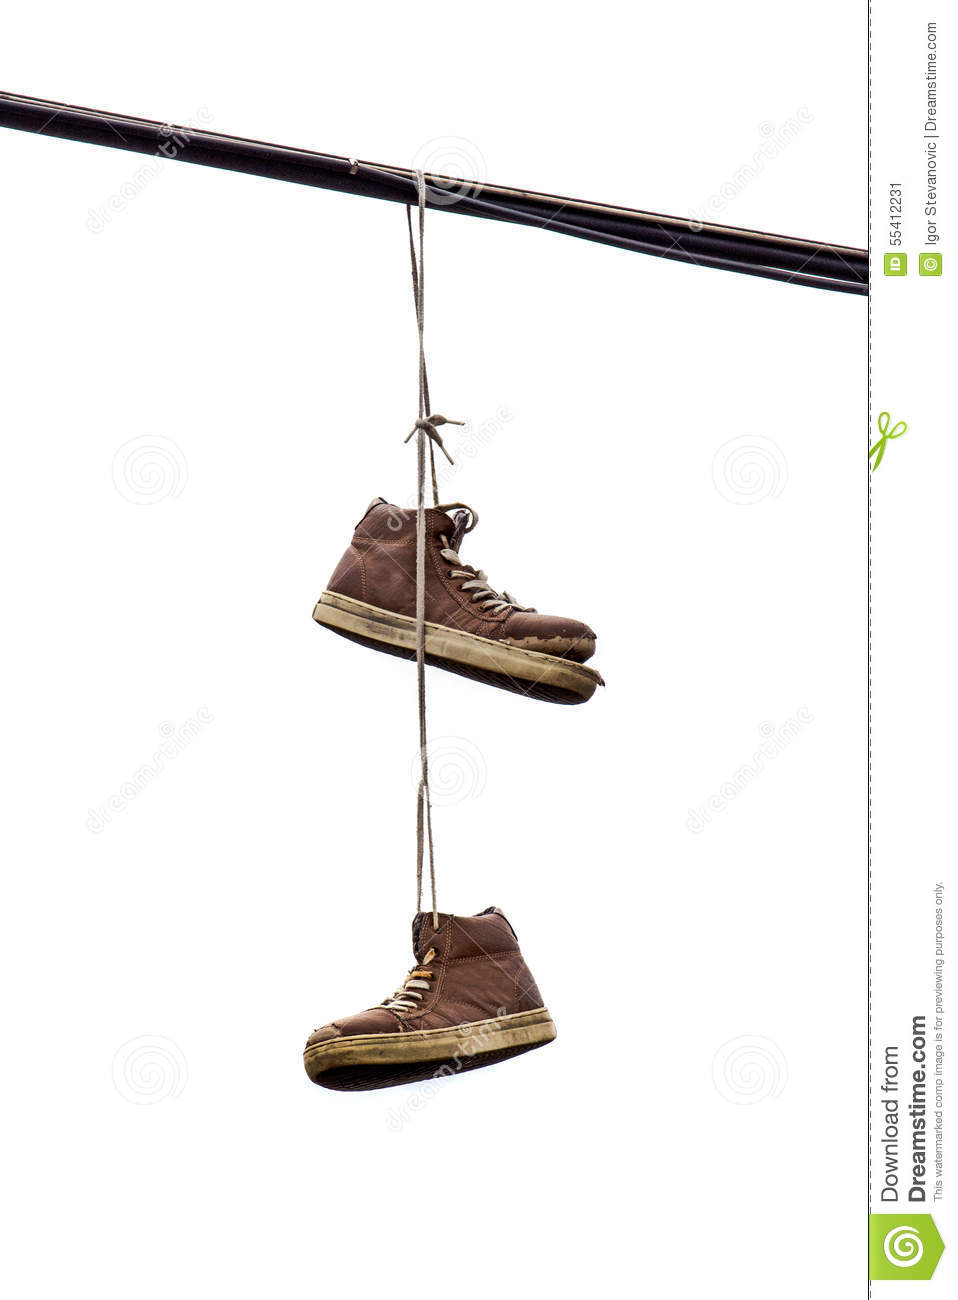 Hanging Pictures On Wire shoe tossing, old sneakers hanging on wire stock photo - image